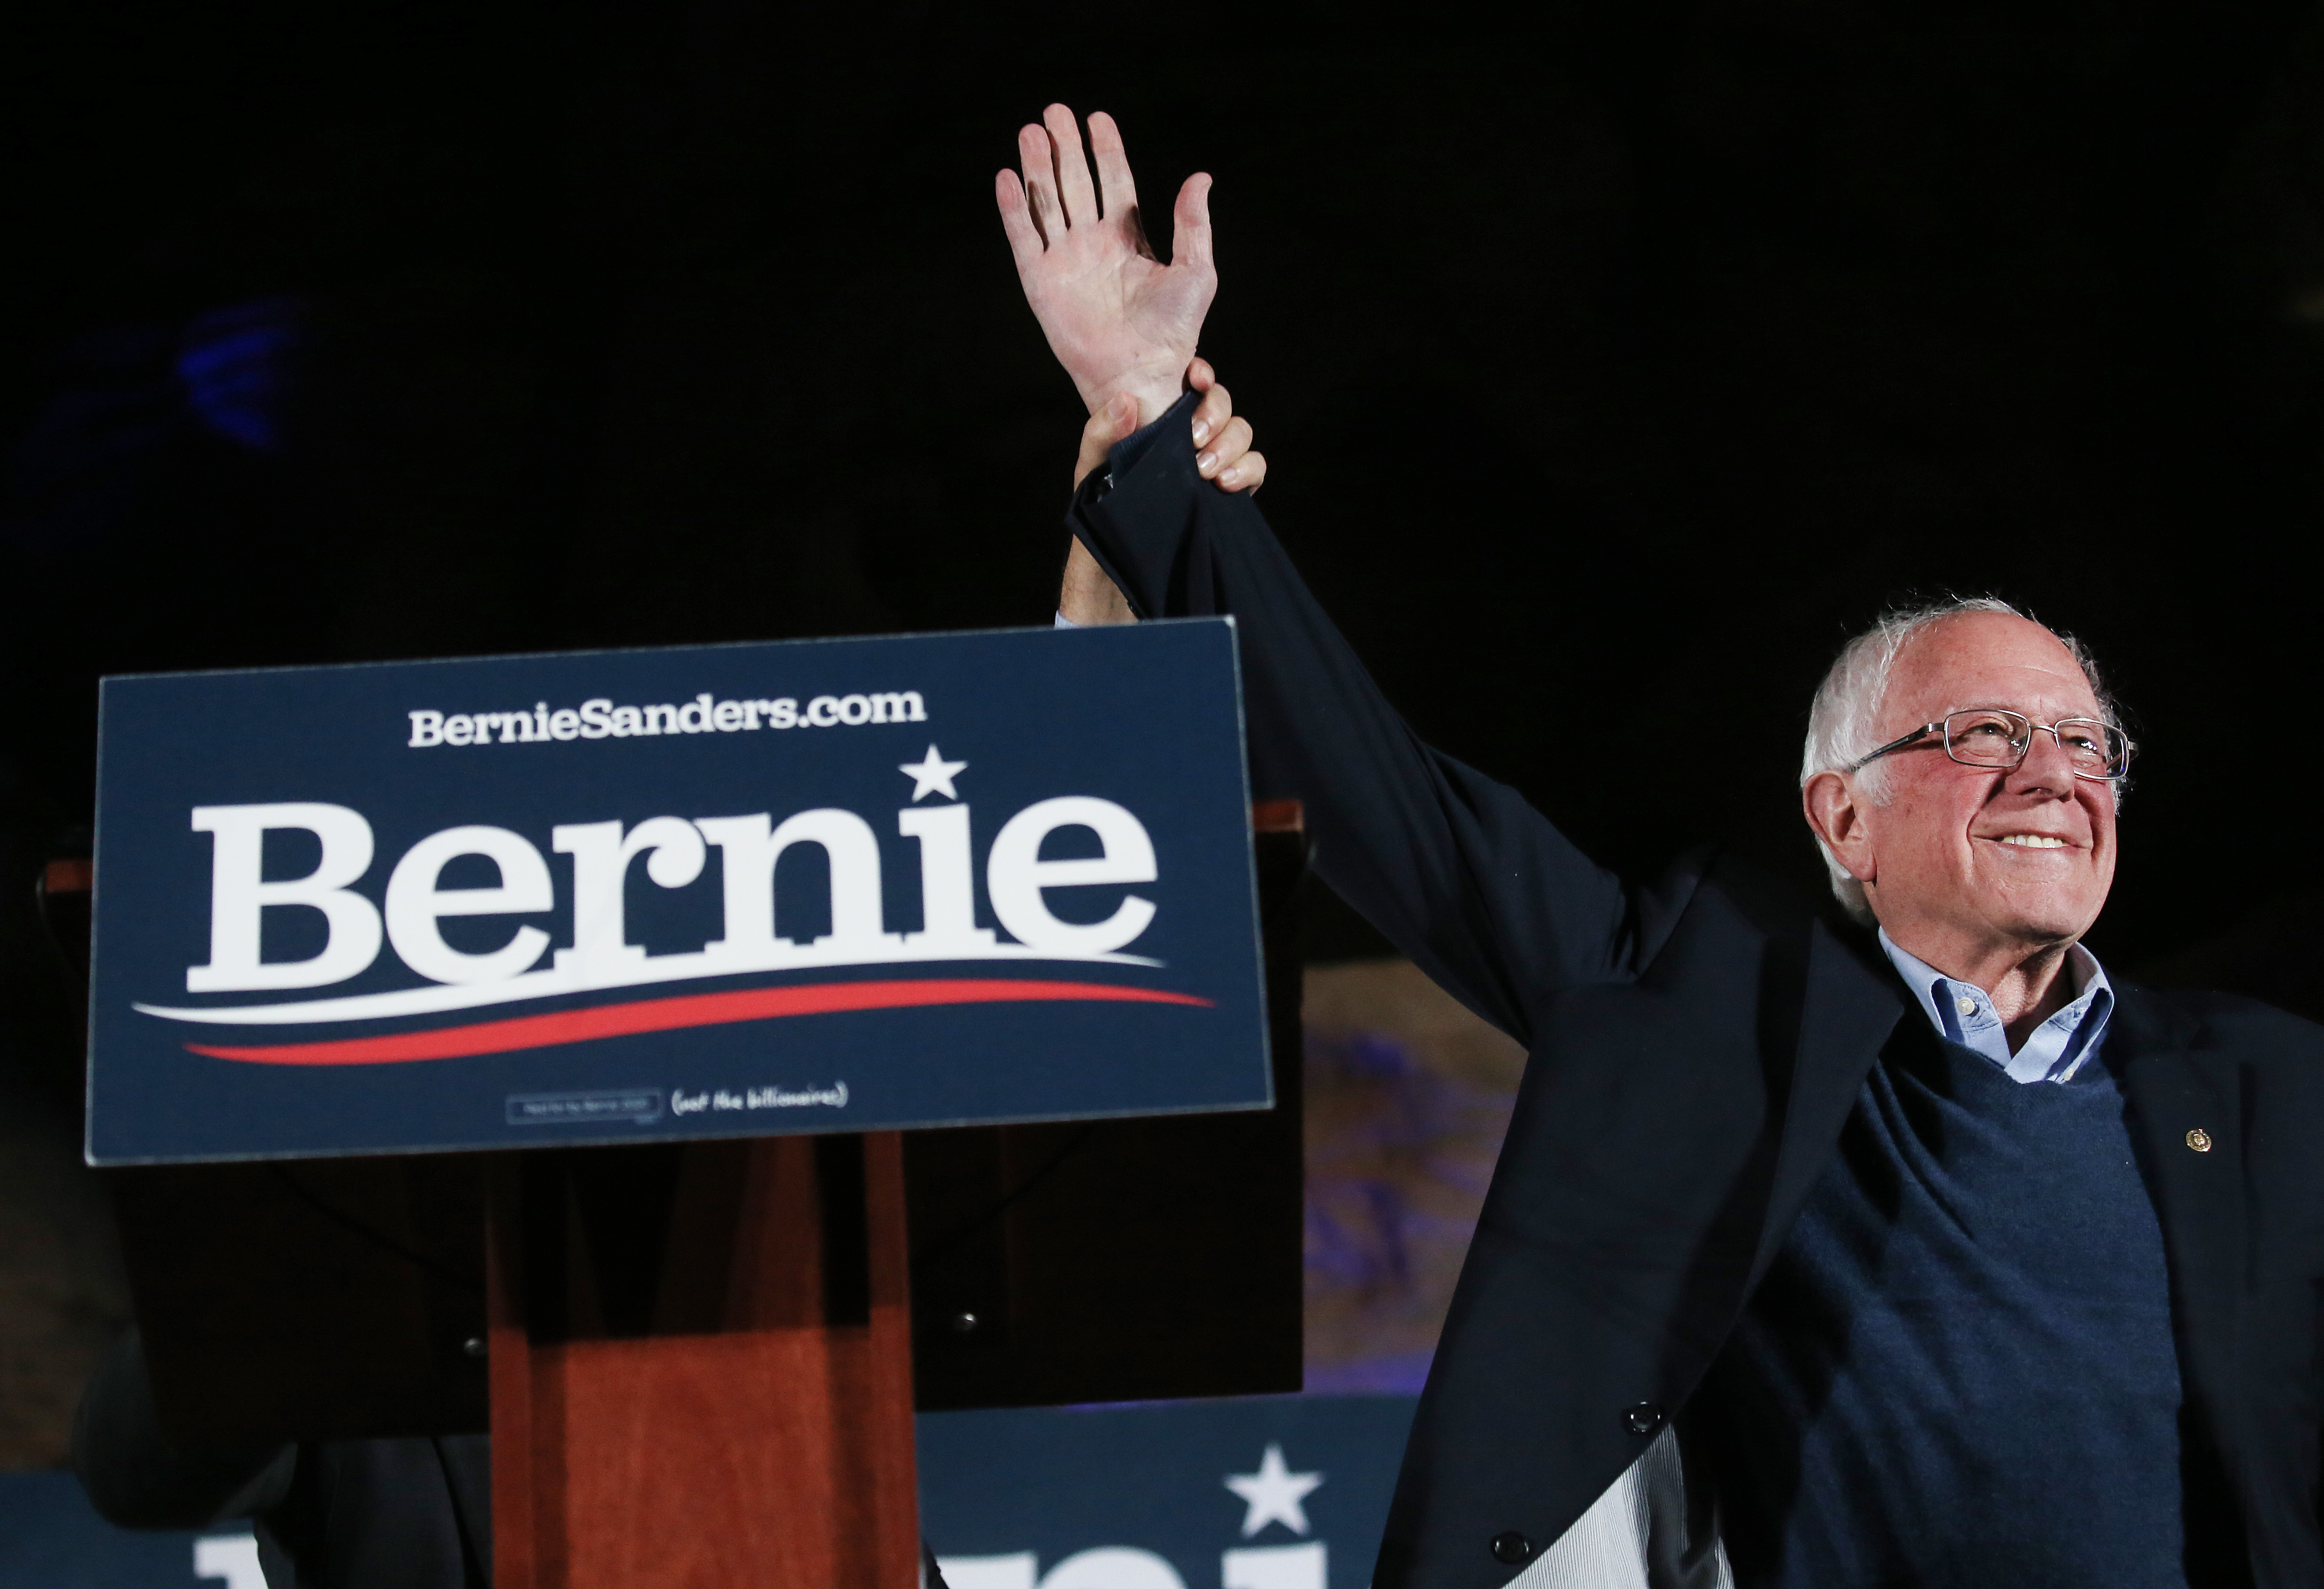 LAS VEGAS, NEVADA - FEBRUARY 21: Democratic presidential candidate Sen. Bernie Sanders (I-VT) waves to supporters at a campaign rally on February 21, 2020 in Las Vegas, Nevada. The upcoming Nevada Democratic presidential caucus will be held February 22. (Photo by Mario Tama/Getty Images)